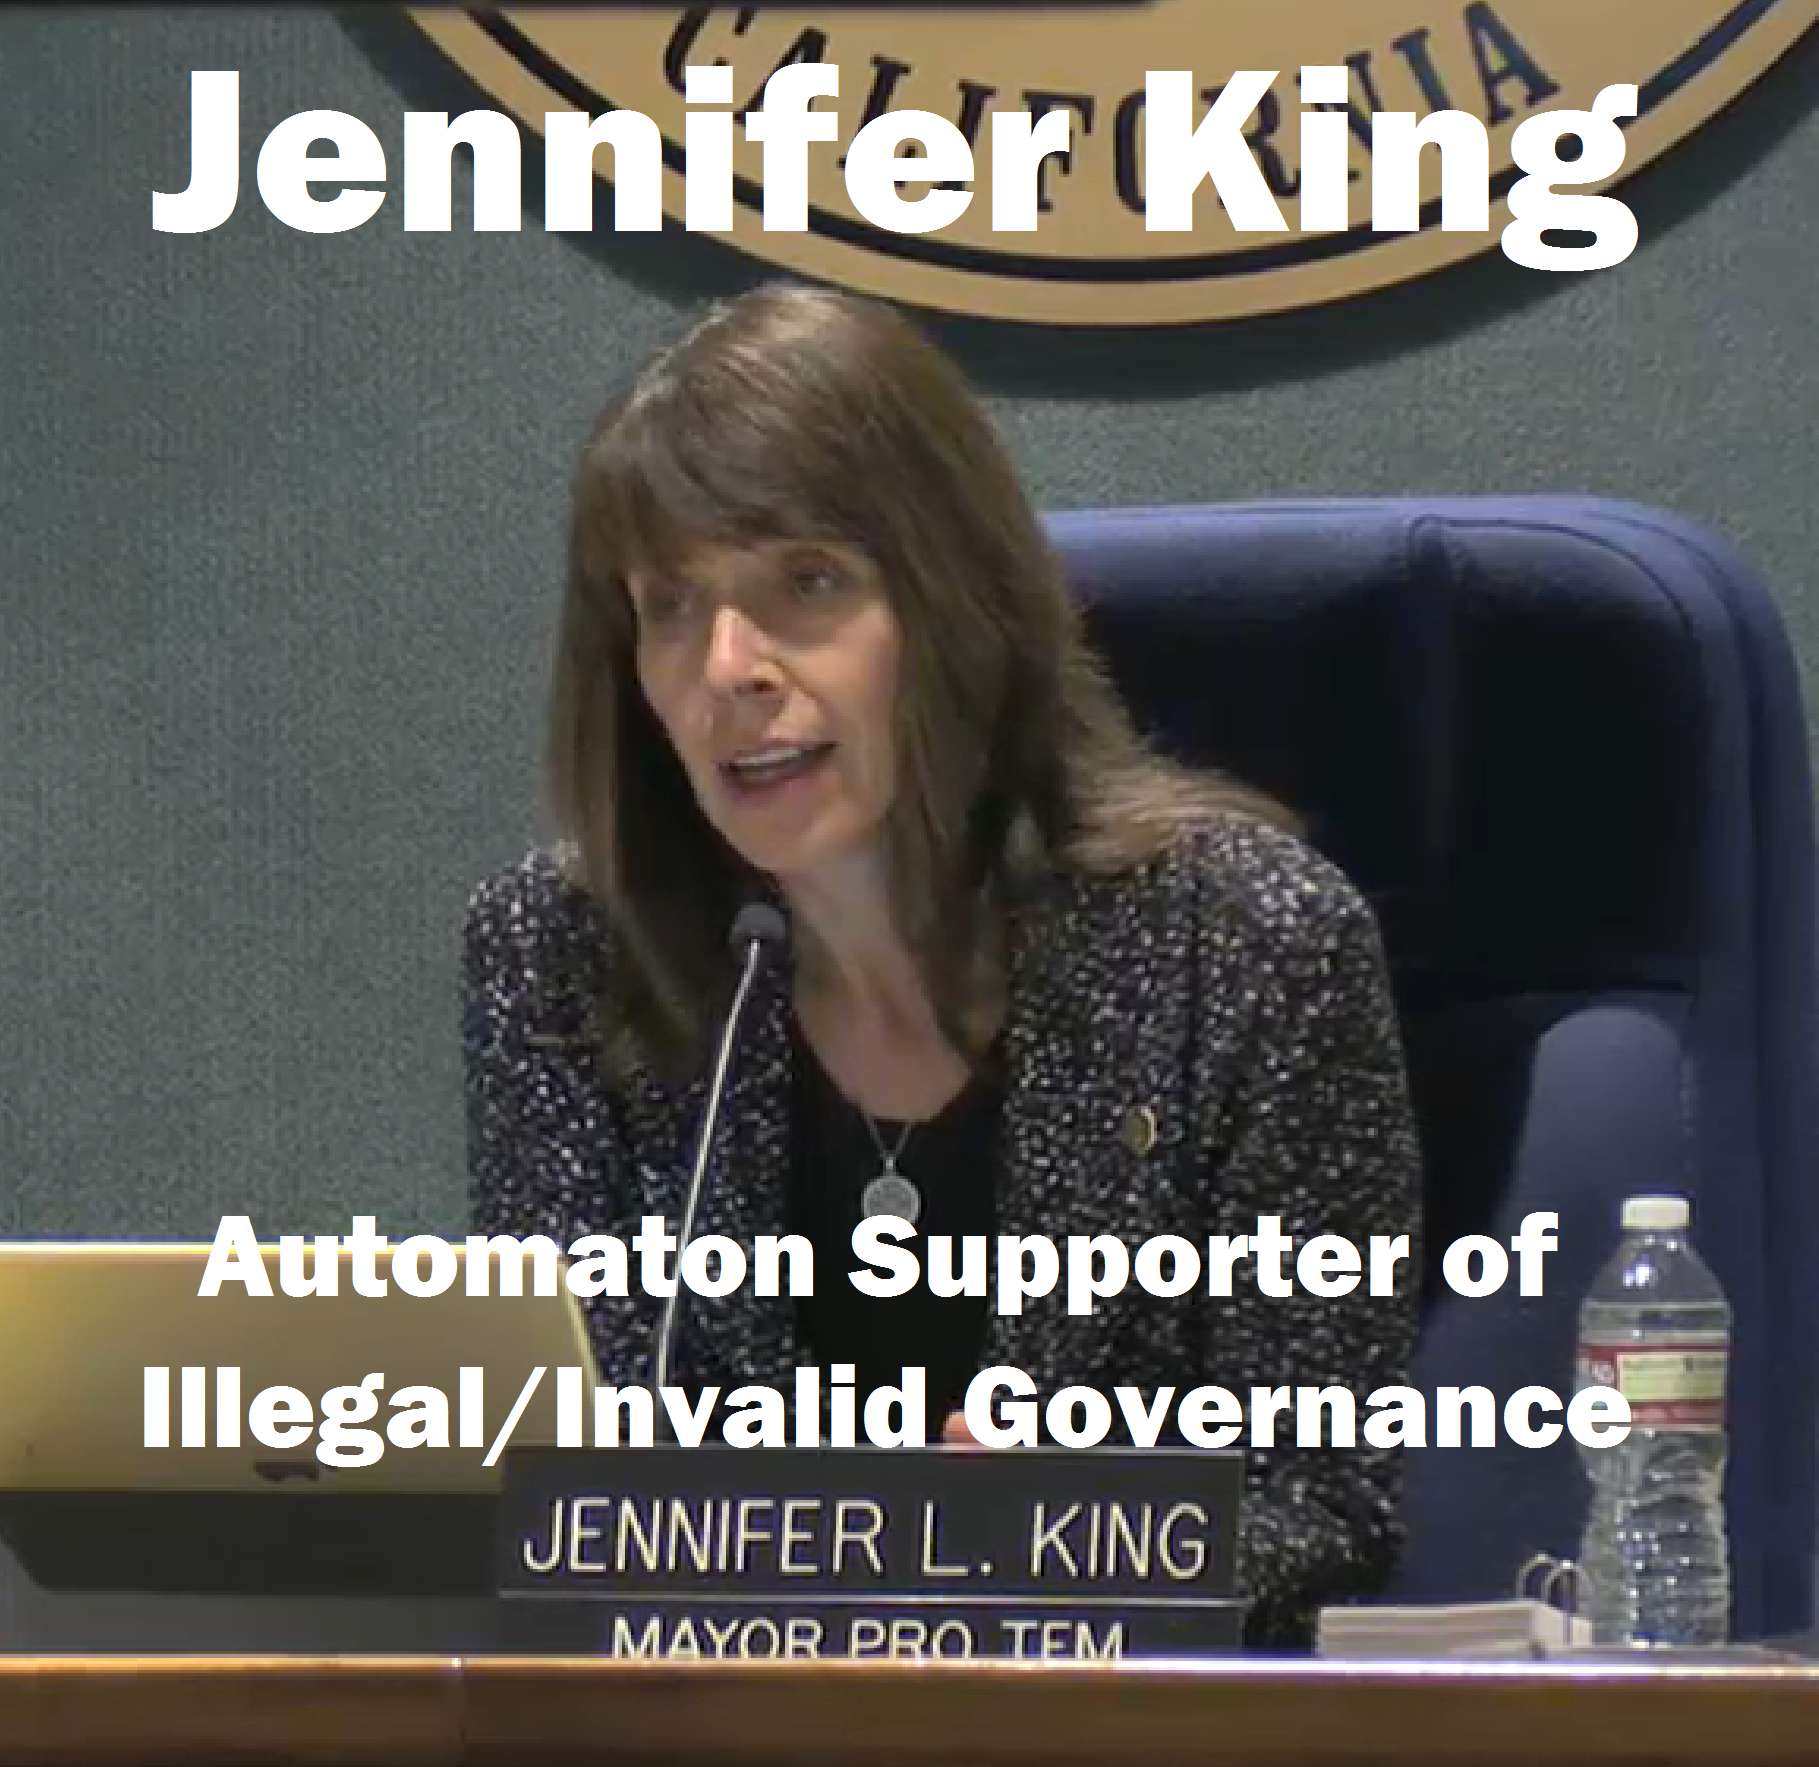 Jennifer King: though a freshman councilperson, in 2014 she distinguished her lack of judgment and loyalty to PVE residents by voting to waste more taxpayer money fighting against those same taxpayer open space interests